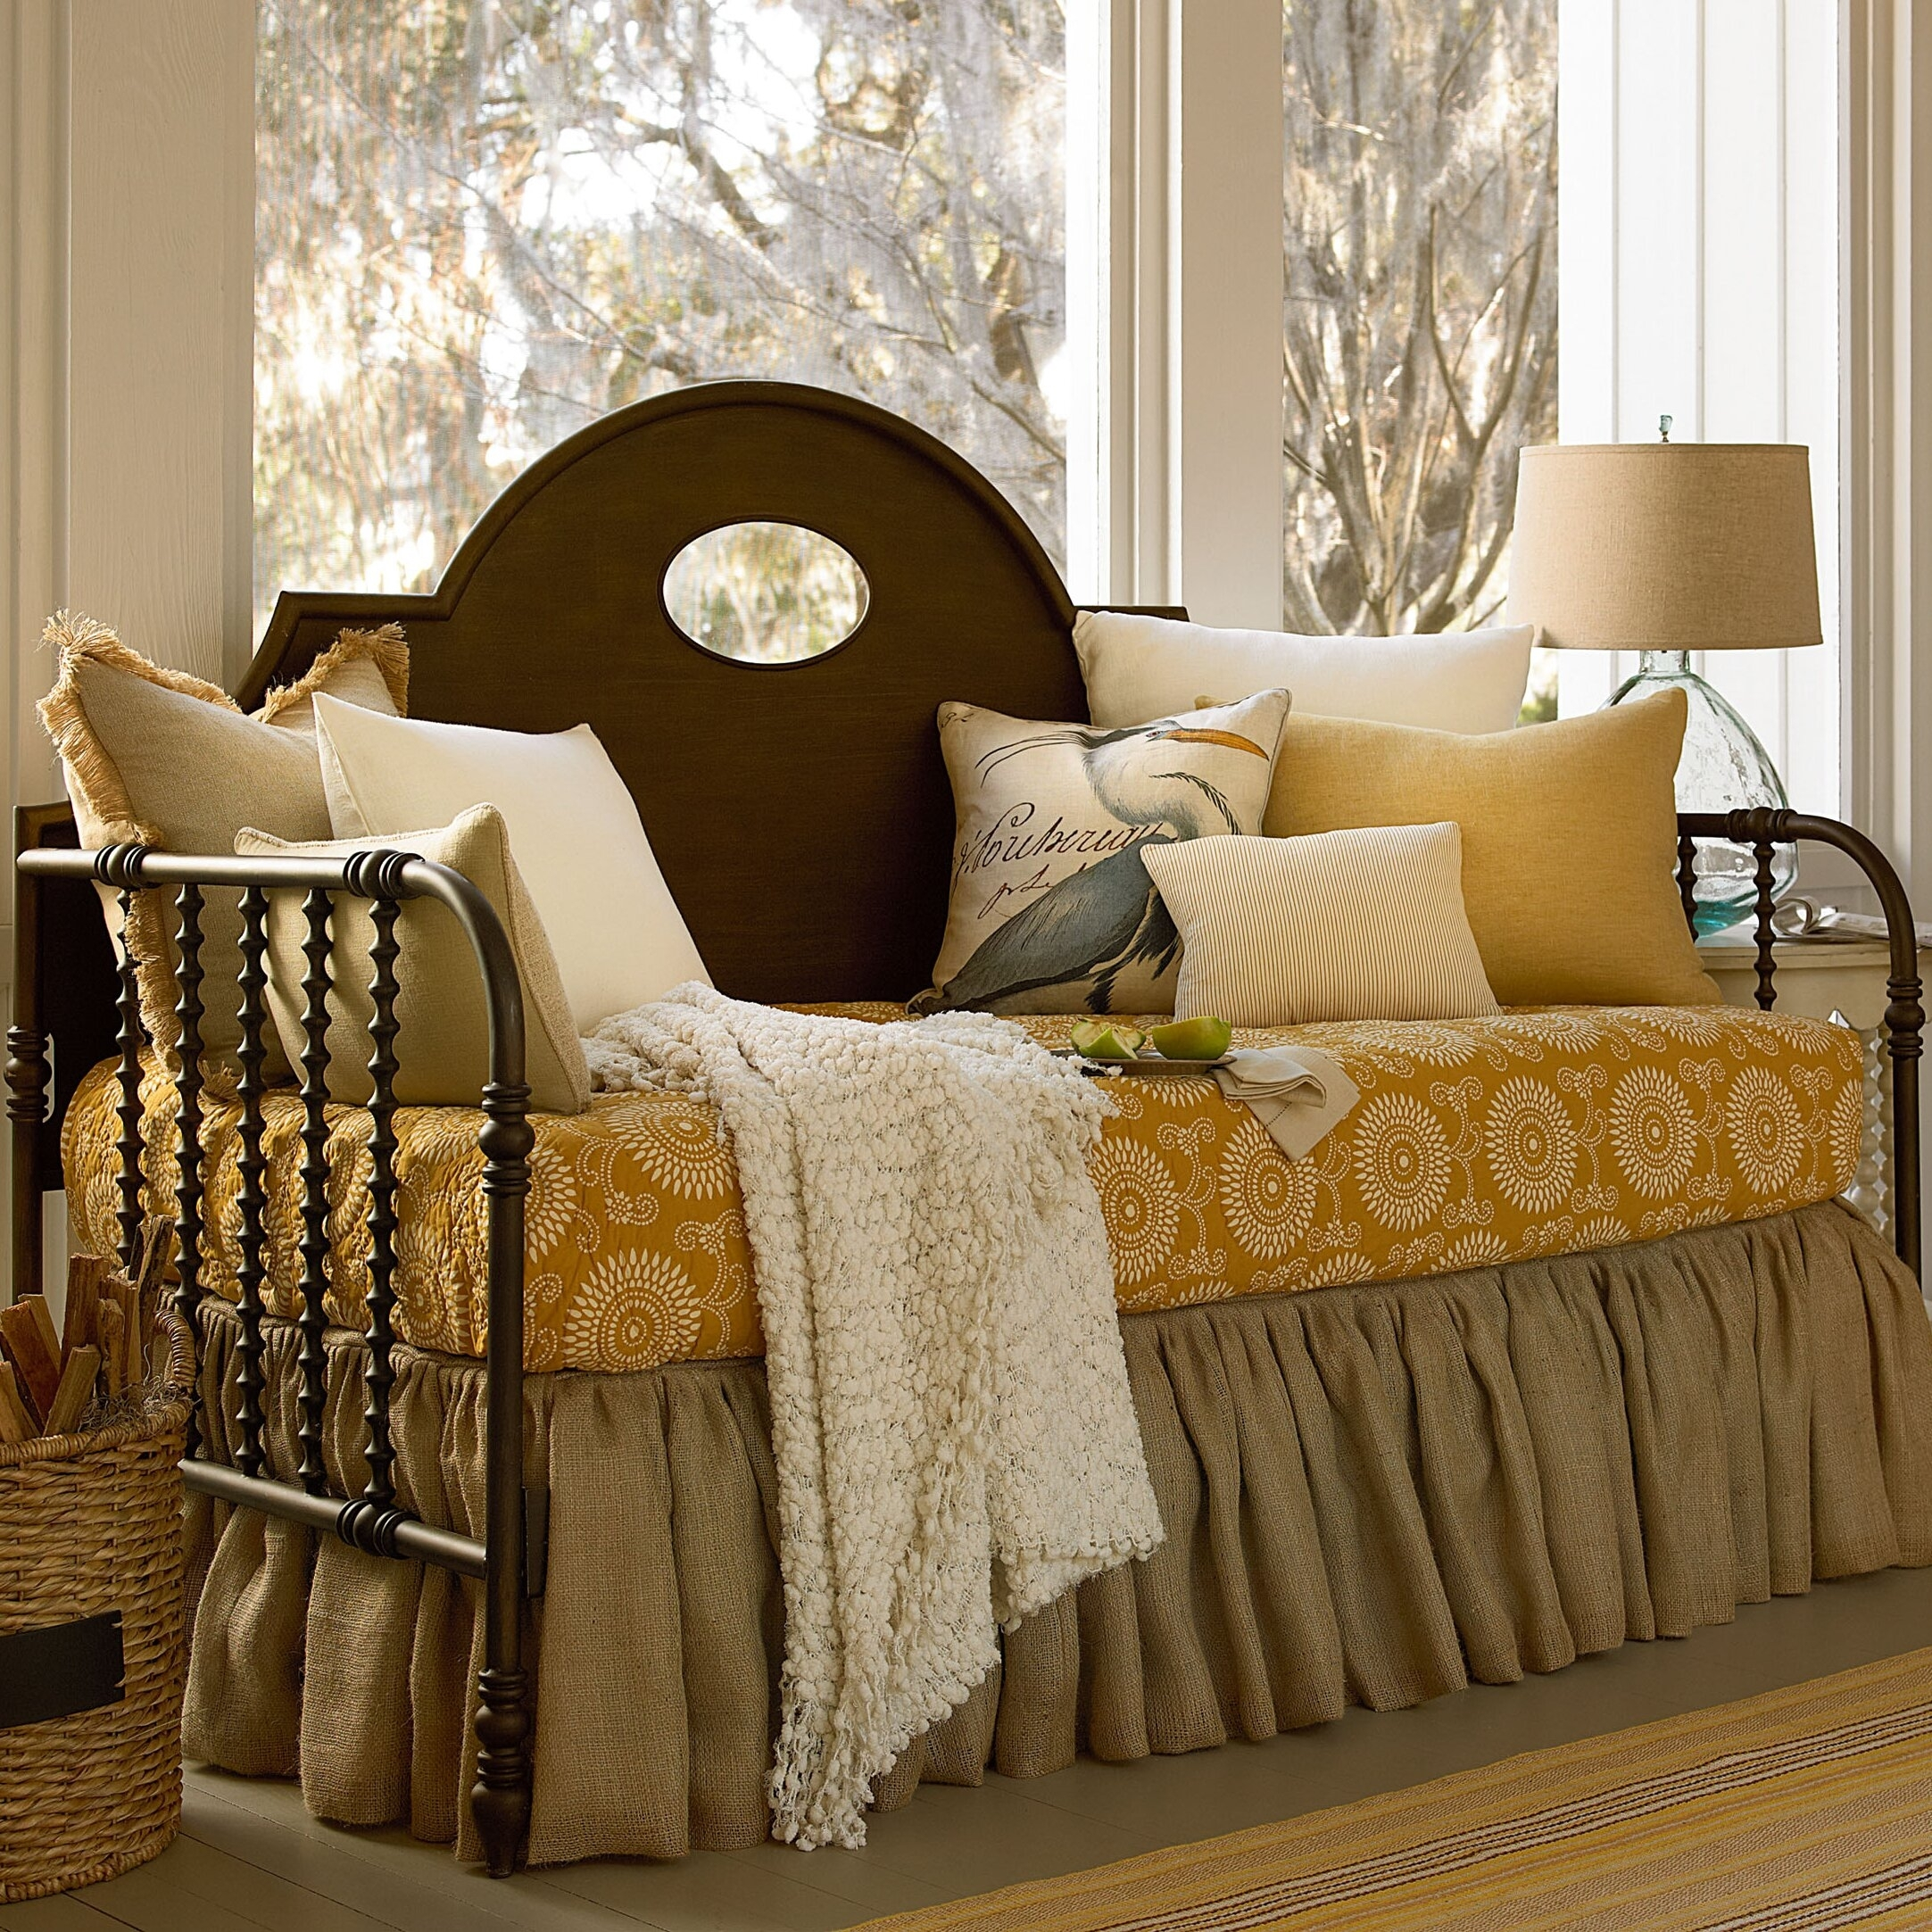 Image of: Paula Deen Daybed Ideas On Foter